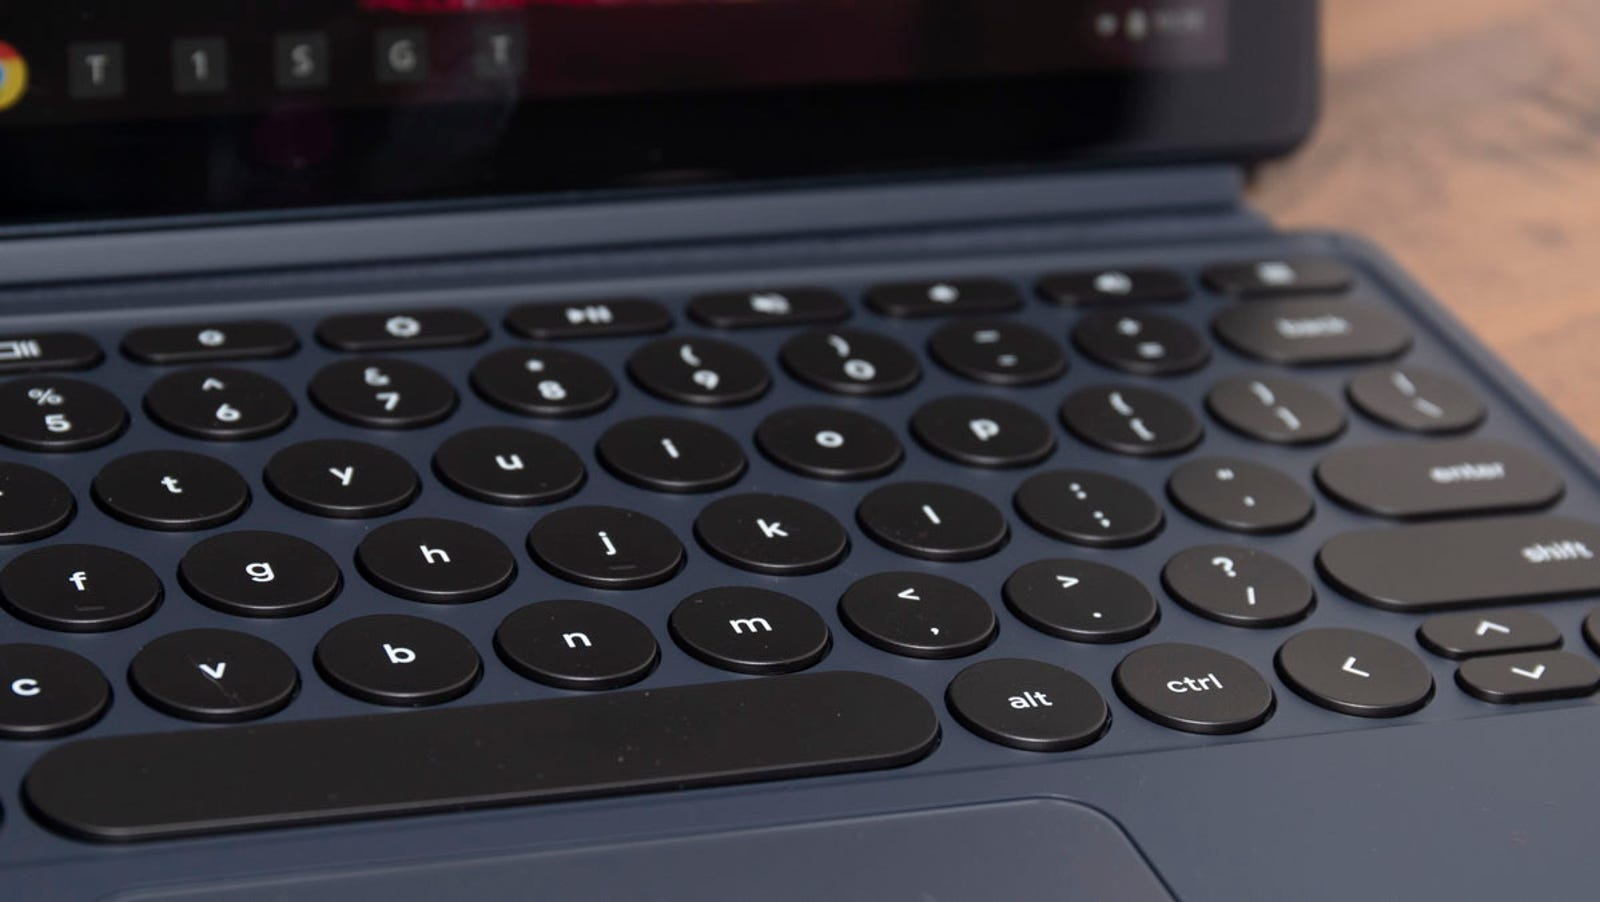 Google made a big deal about the rounded keys of the Pixel Slate, and they're surprisingly nice, but still not as good as the old-fashioned SA-profile keys they're designed to imitate.